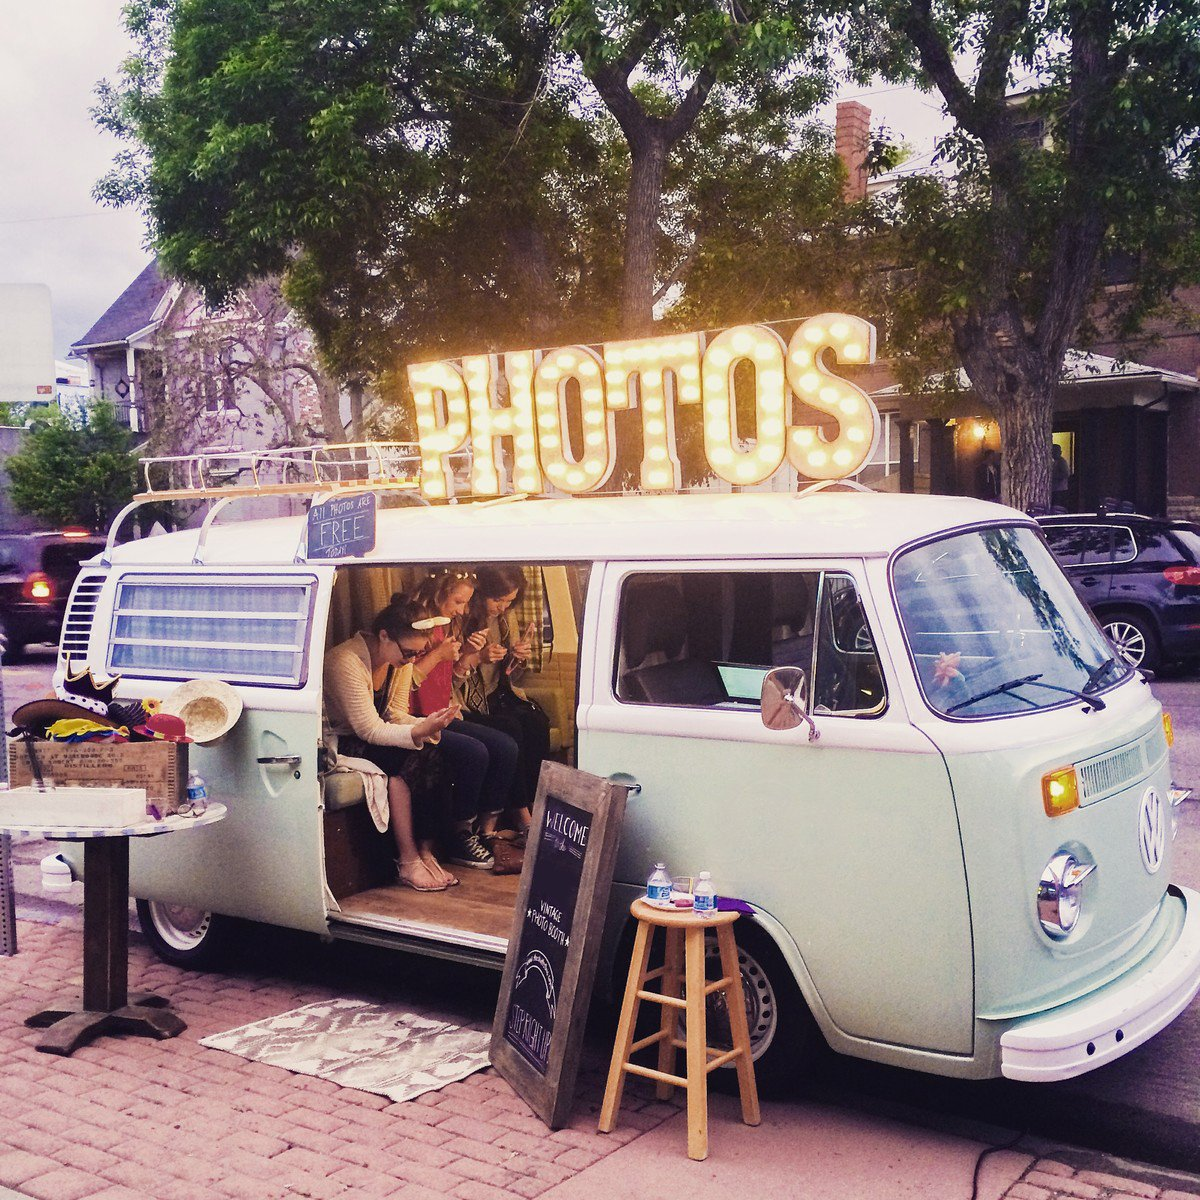 PHOTOS Photo Booth PLUG-IN Rustic Vintage Inspired Metal Marquee Sign Light - 24 colors.